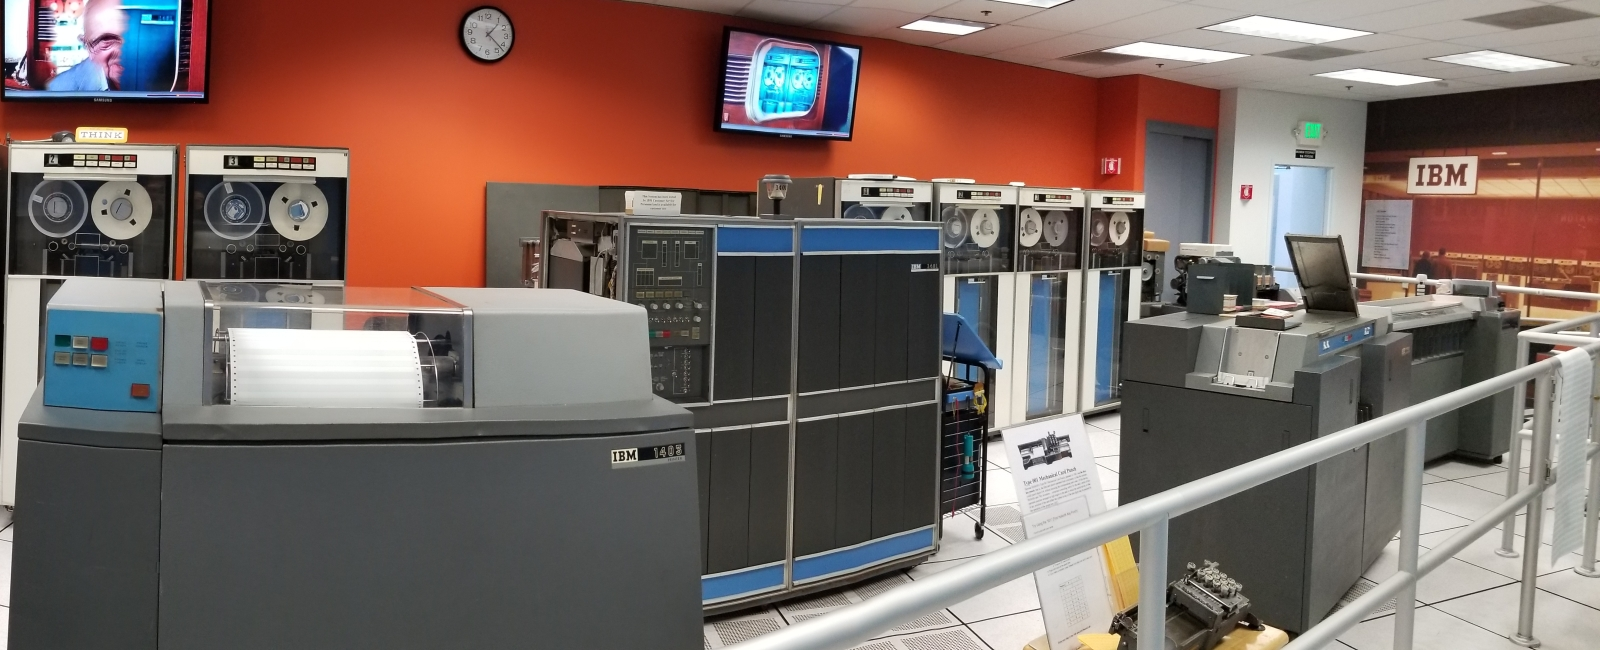 IBM 1403 Mainframe